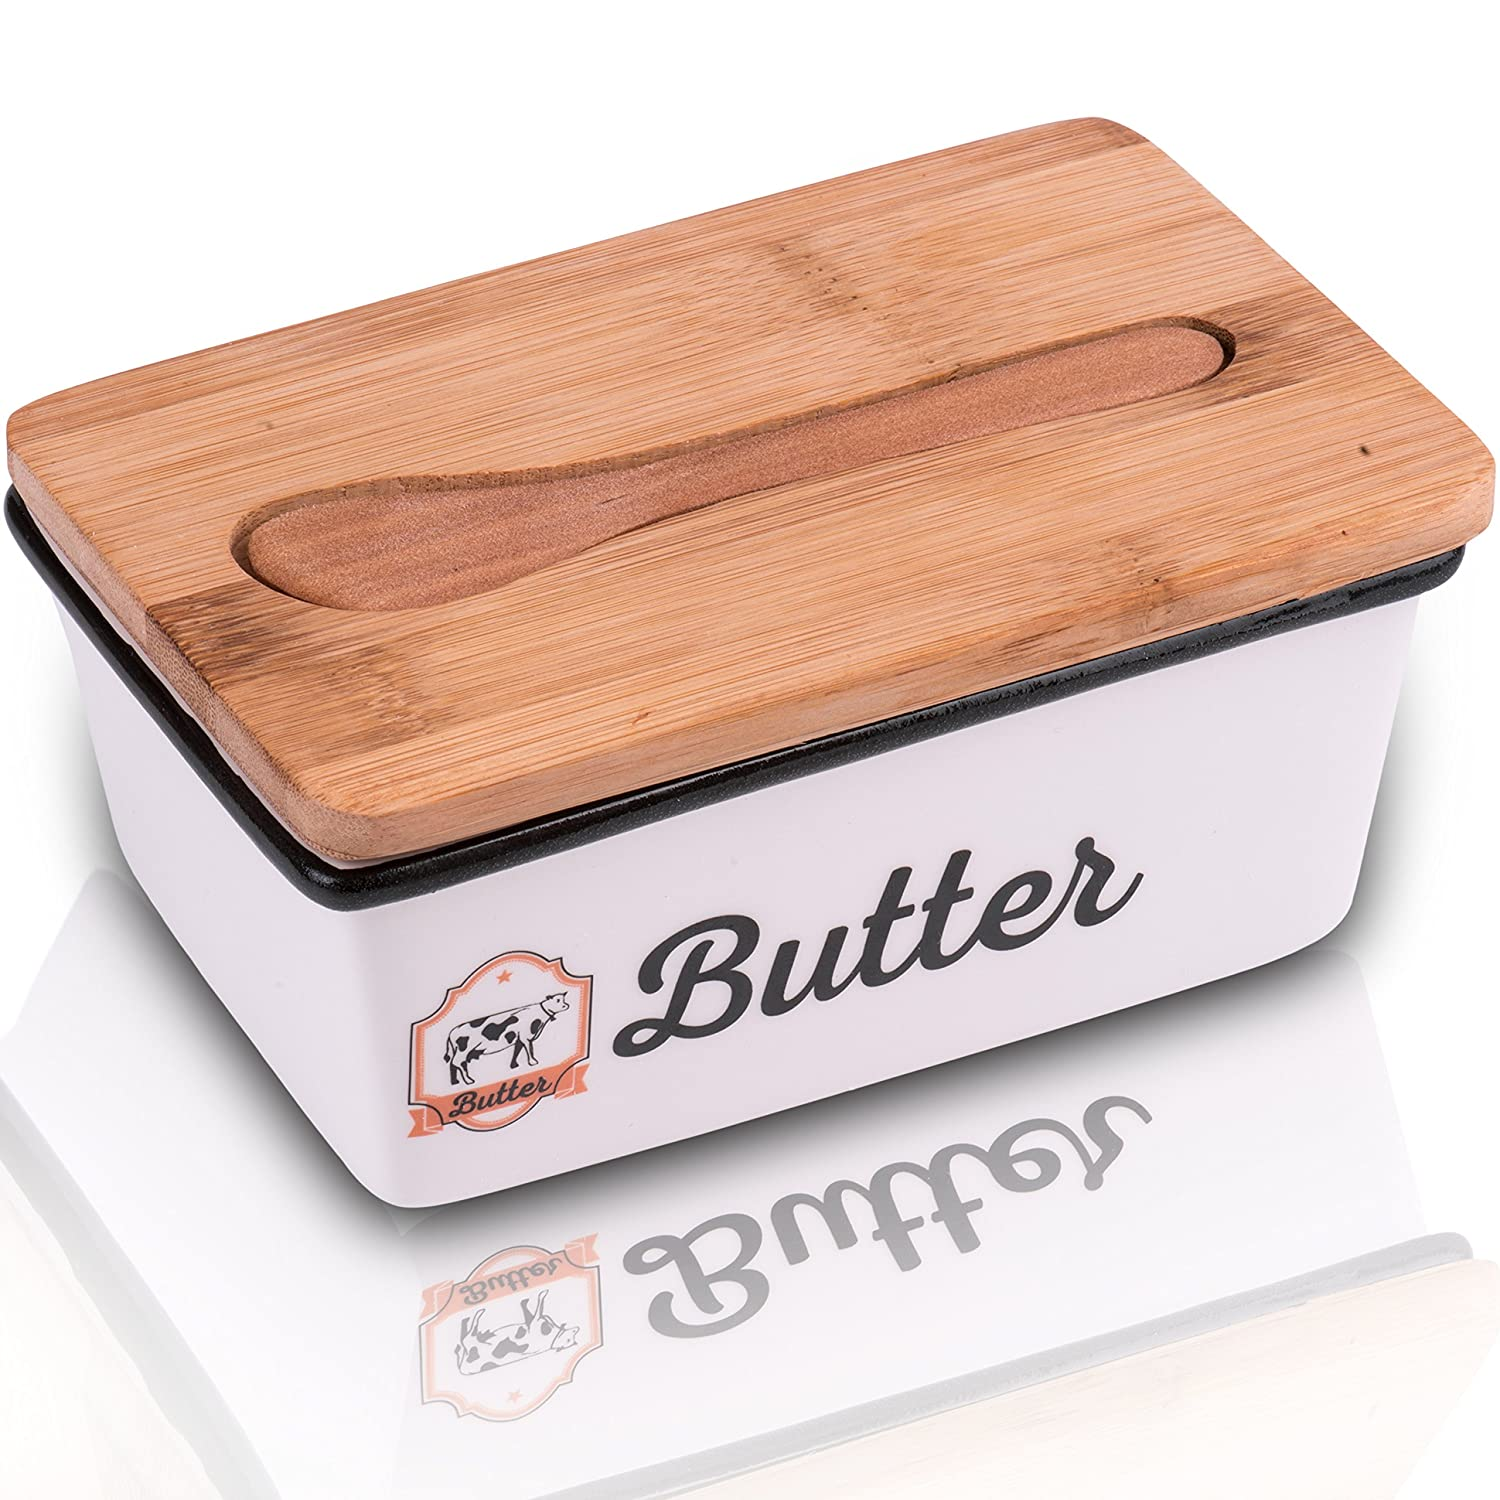 Adirom Butter Dish, Butter Dish with Lid - Elegant Porcelain Butter Crock with Bamboo Cover Keeps Your Butter Fresh, Clean and Flavorful,Bonus- Bamboo Spoon - Get Your Best Butter Holder